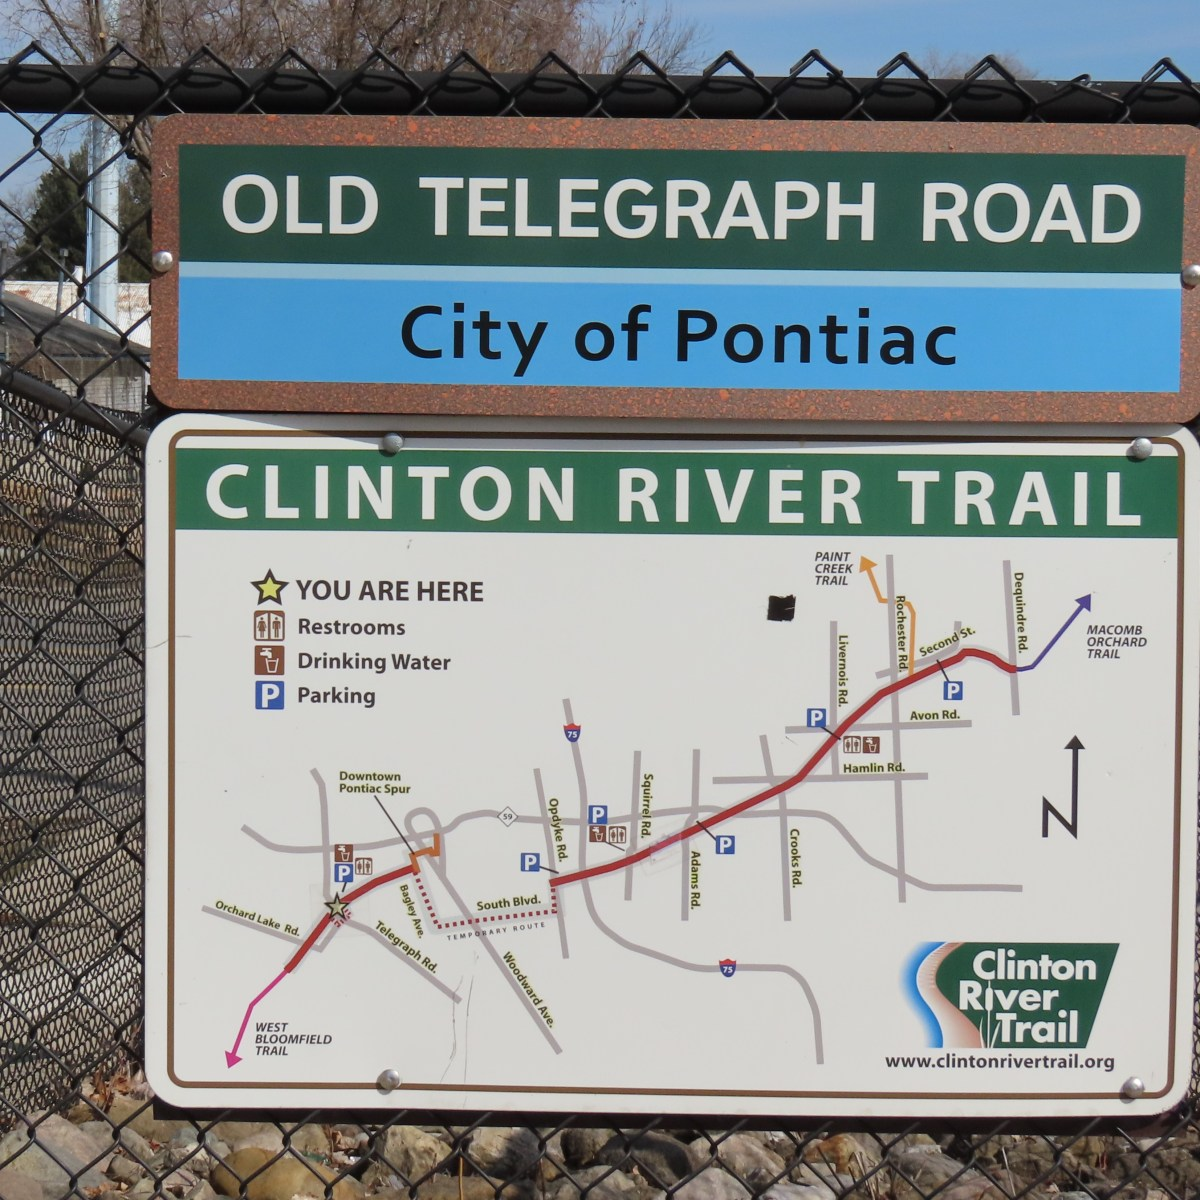 A map of the Clinton River Trail posted on a chain-link fence